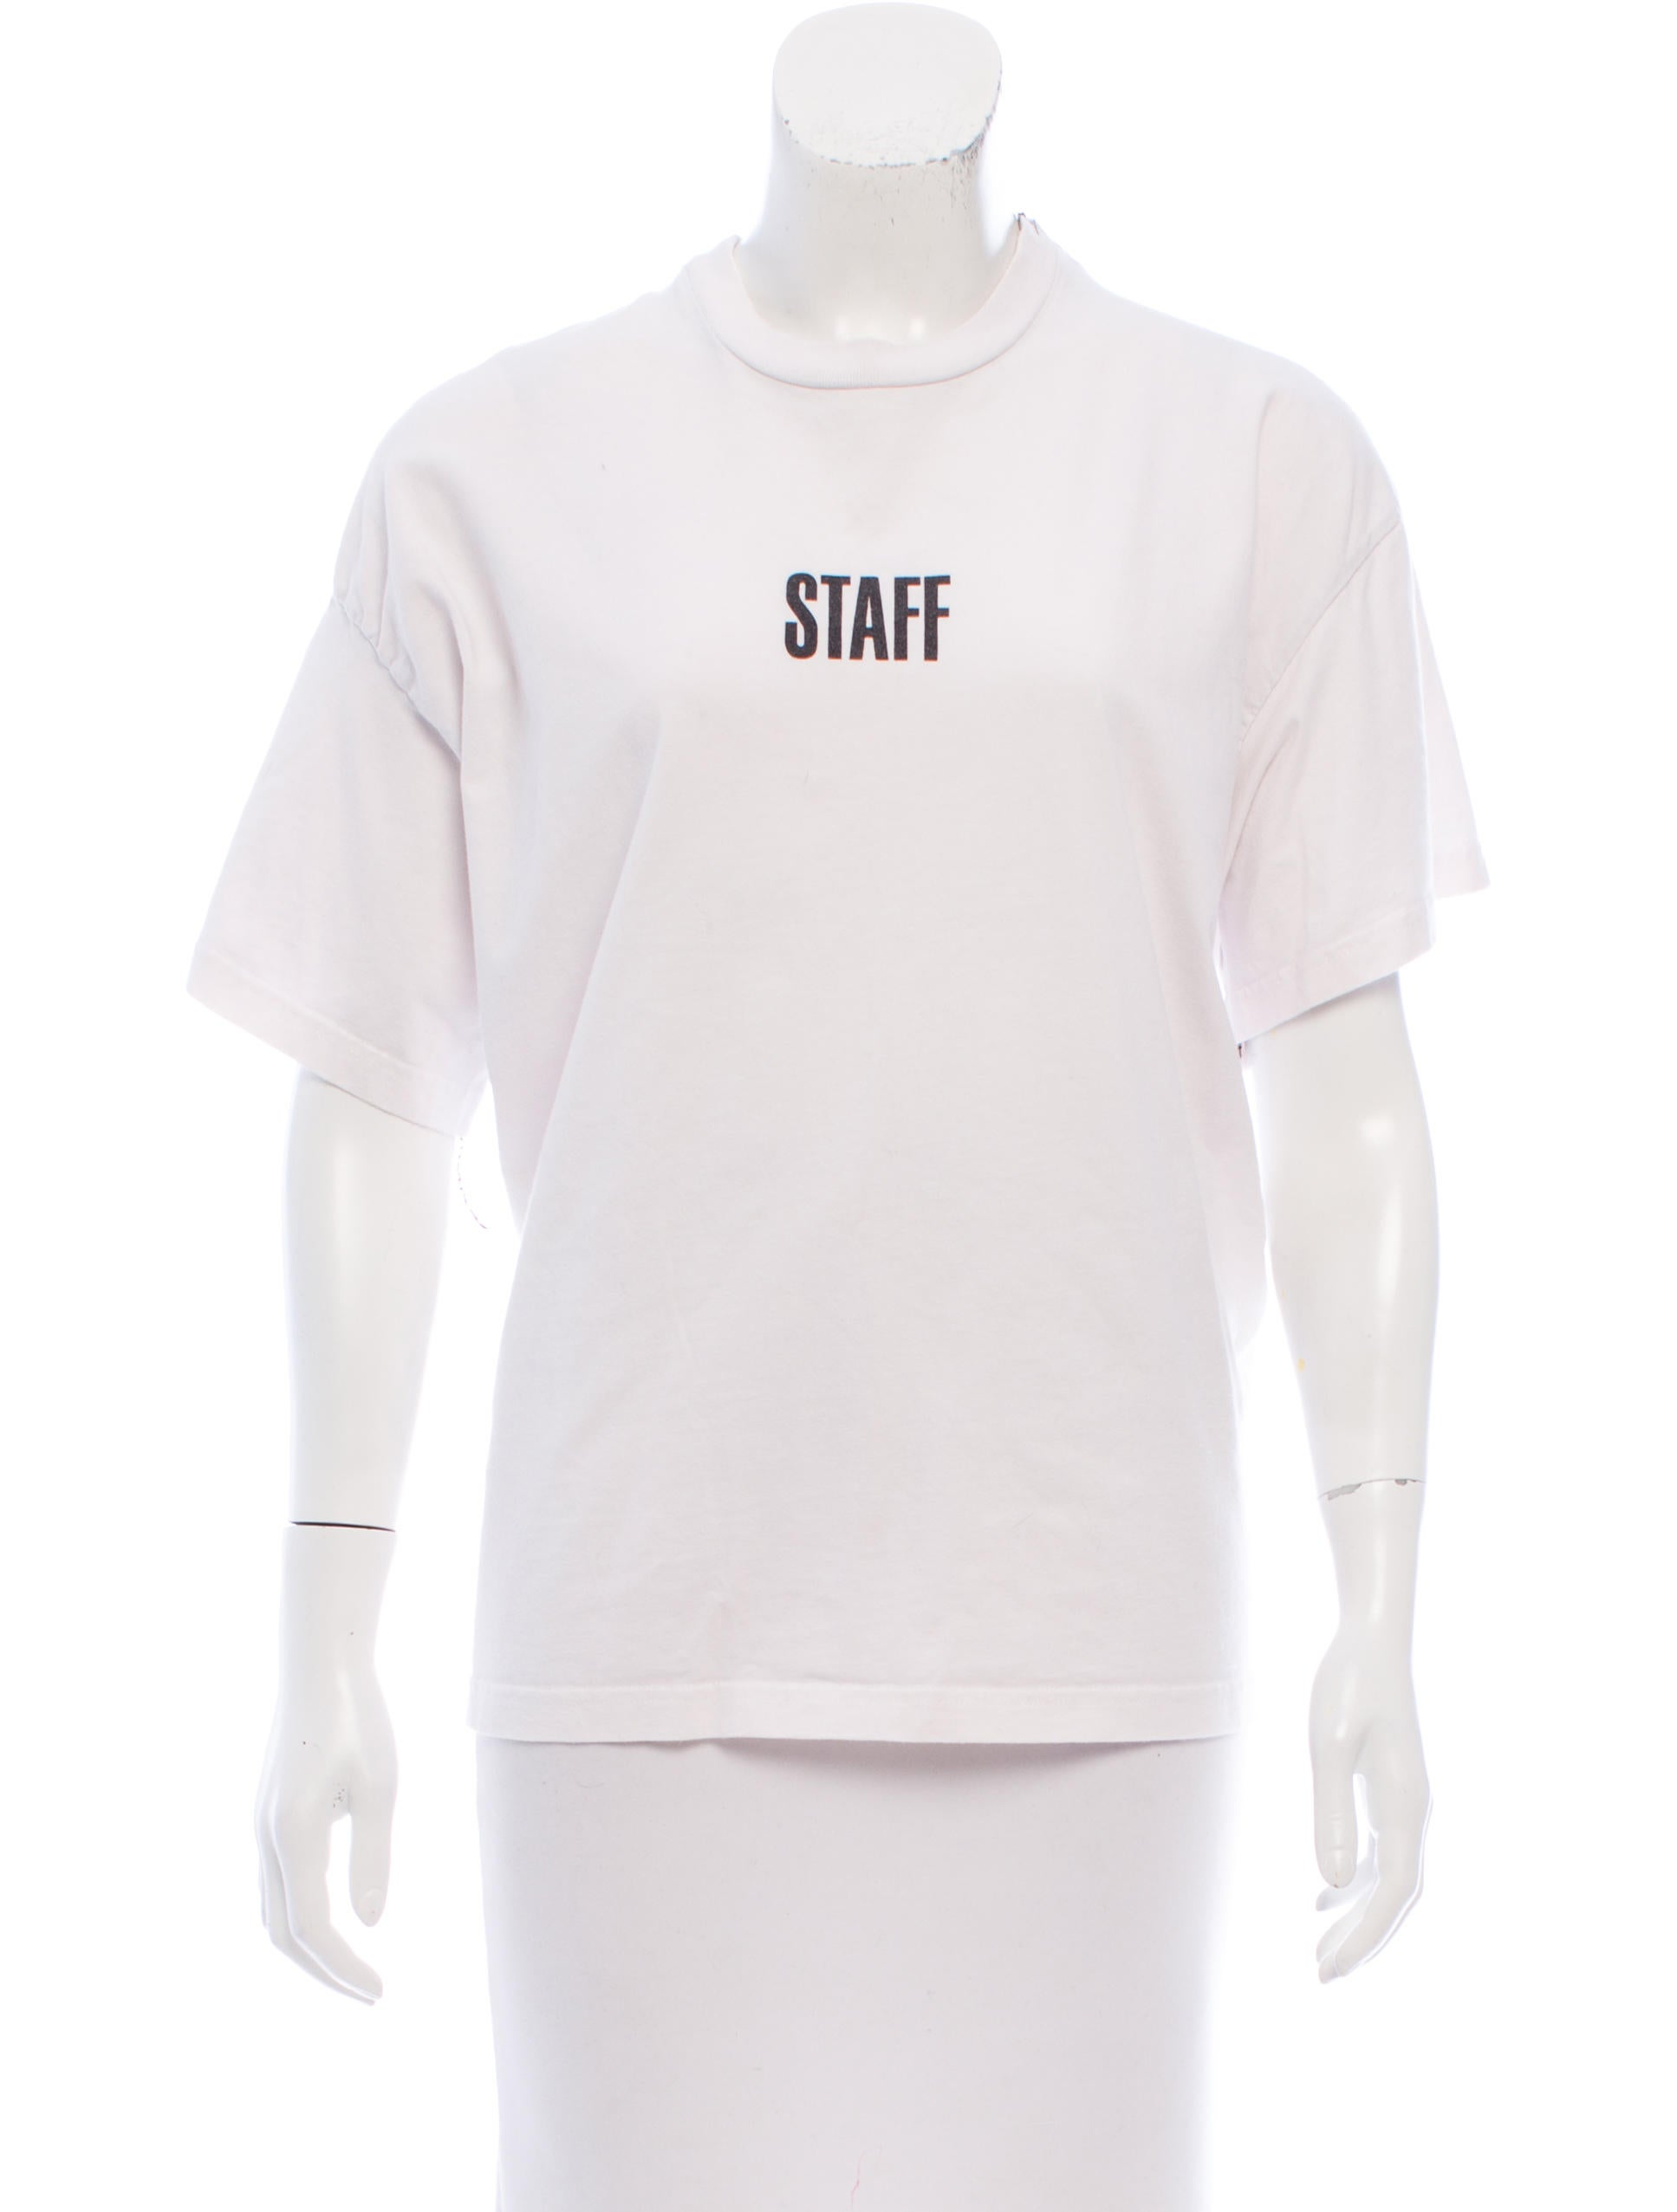 Vetements x hanes 2017 staff t shirt clothing for Vetements basic staff t shirt